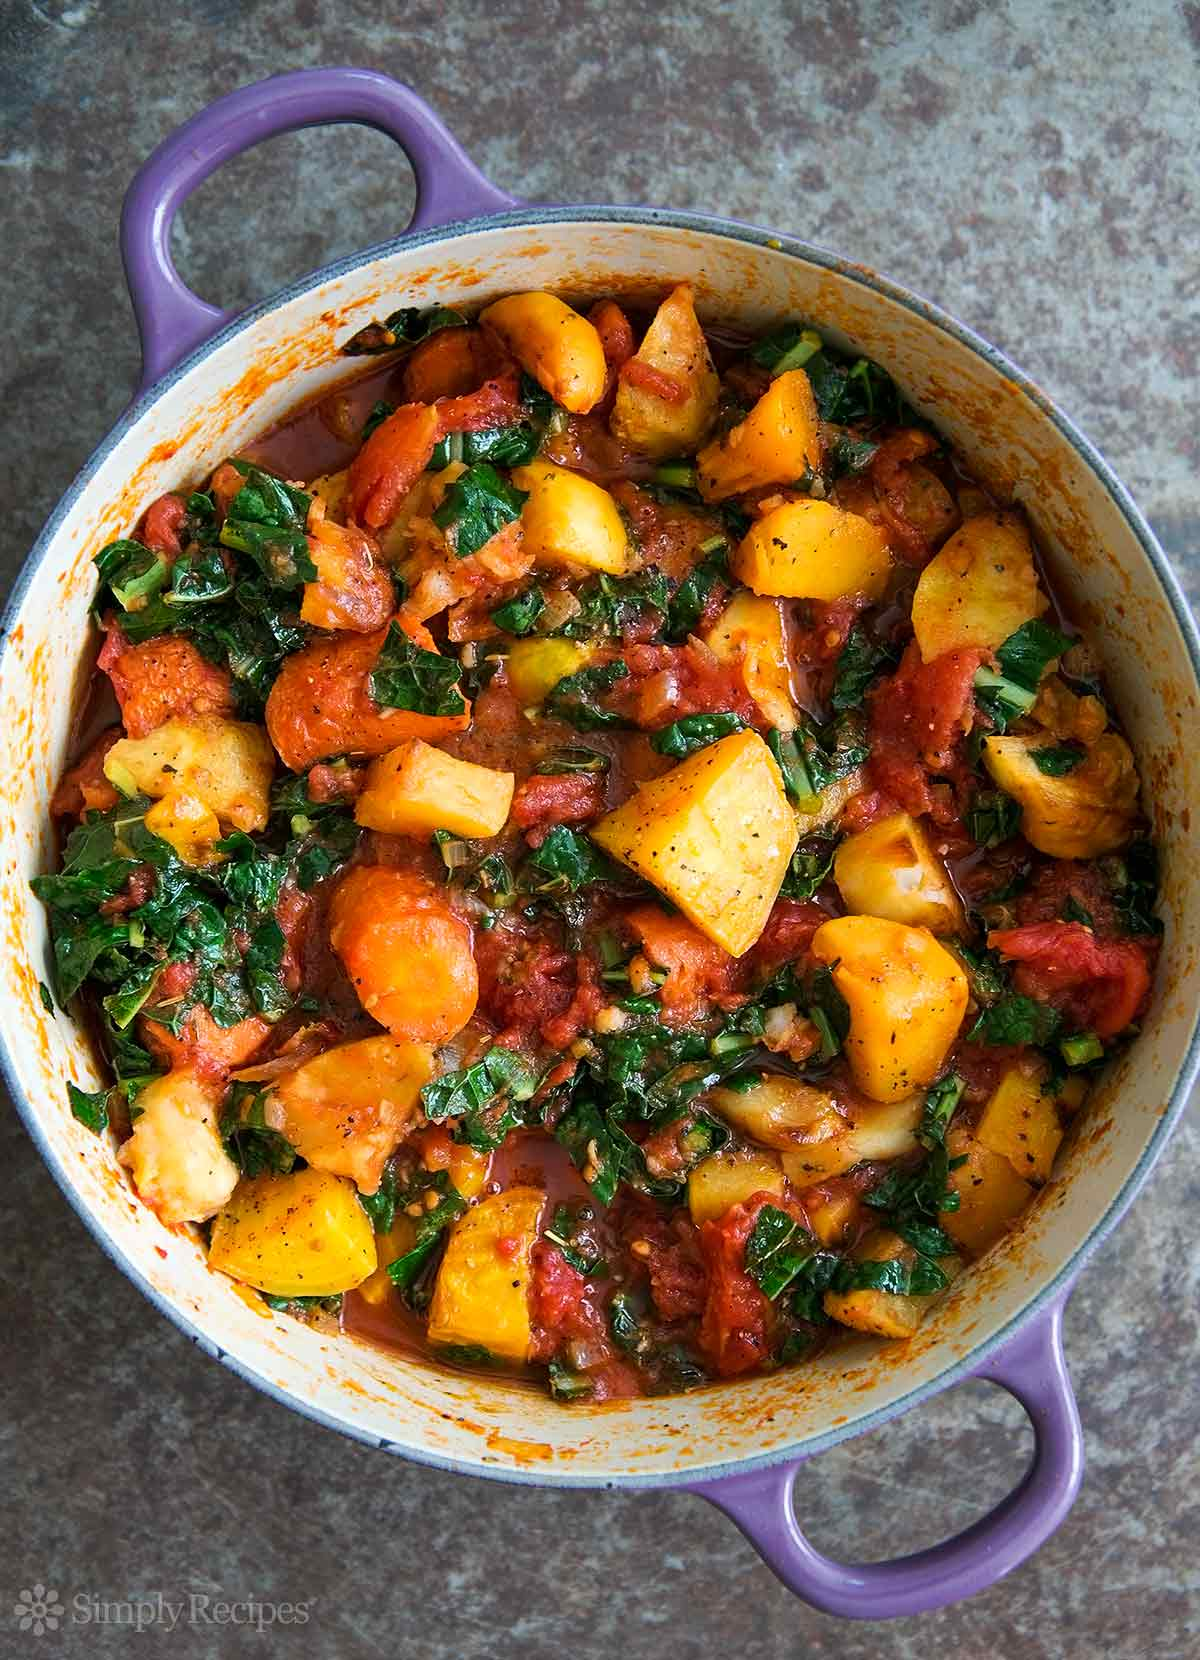 roasted-root-vegetables-with-tomatoes-and-kale.jpg